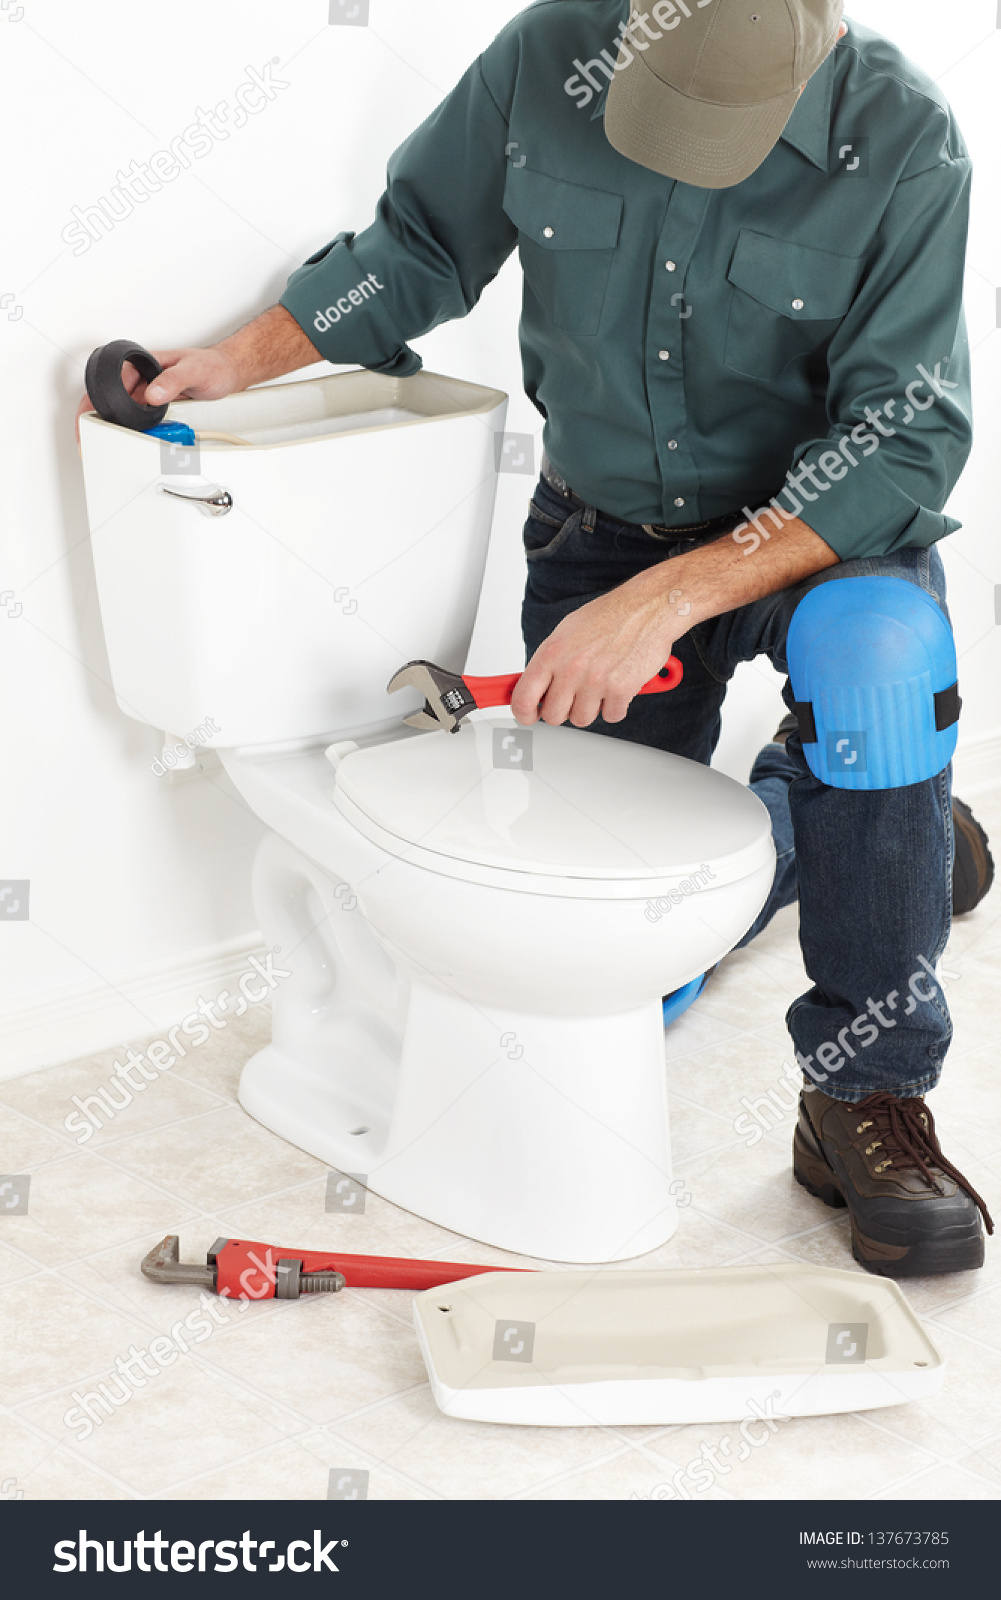 Plumber Toilet Plunger Worker Stock Photo (Safe to Use) 137673785 ...